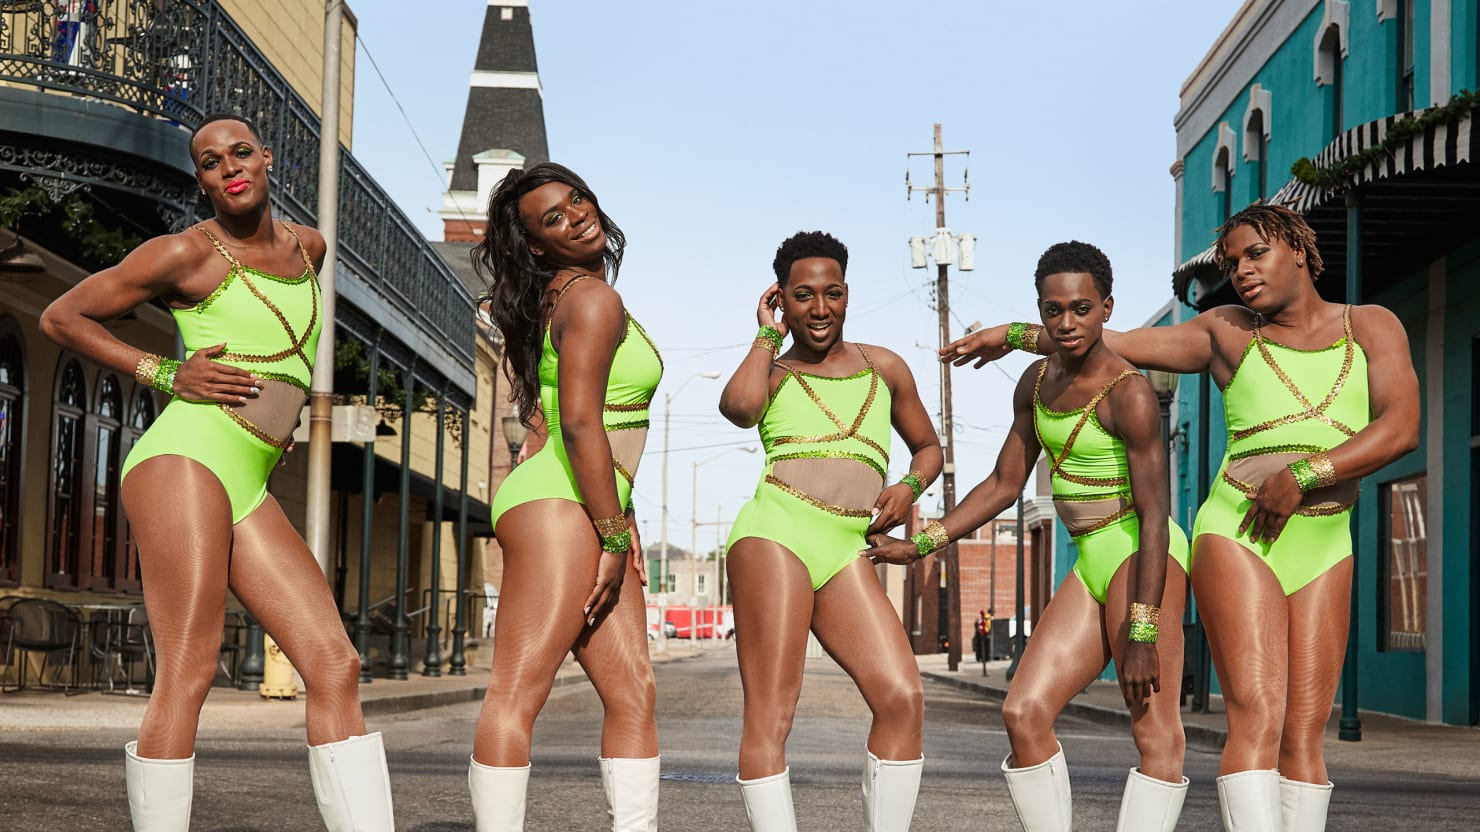 The Prancing Elites: Reality TV Stars You Can Feel Good About Loving